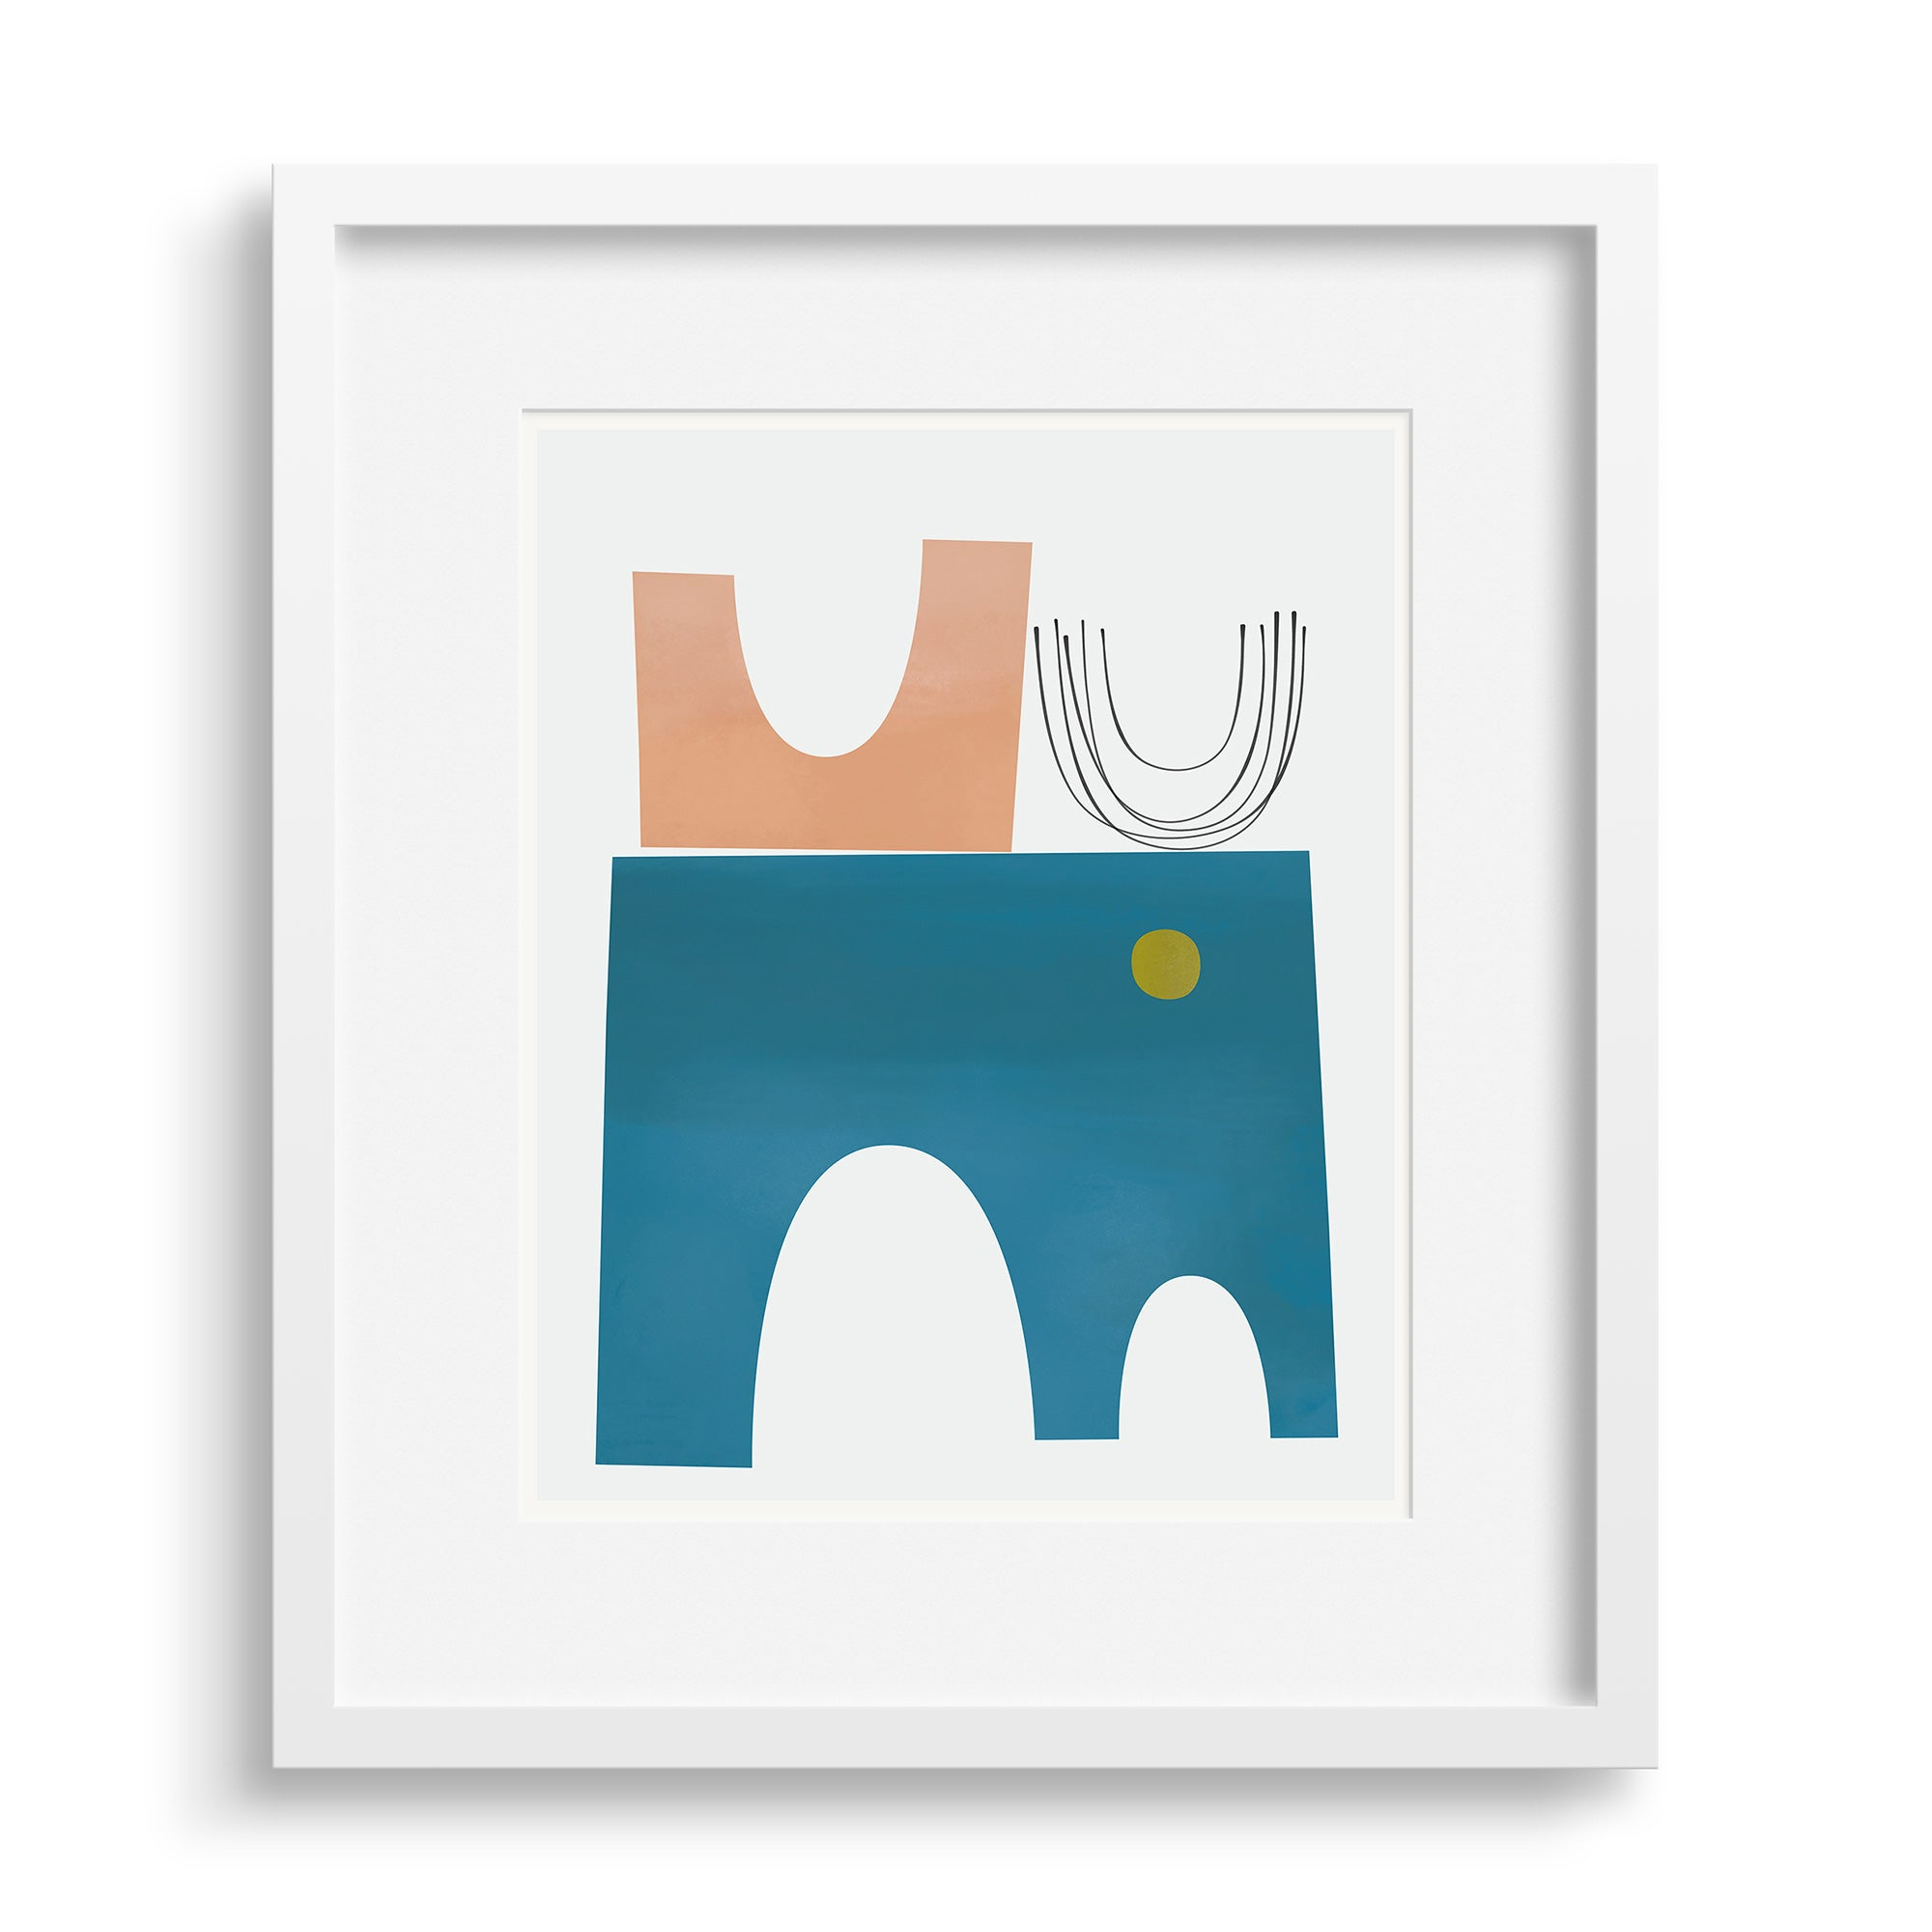 Faraway Places print by Janet Taylor in a white frame.